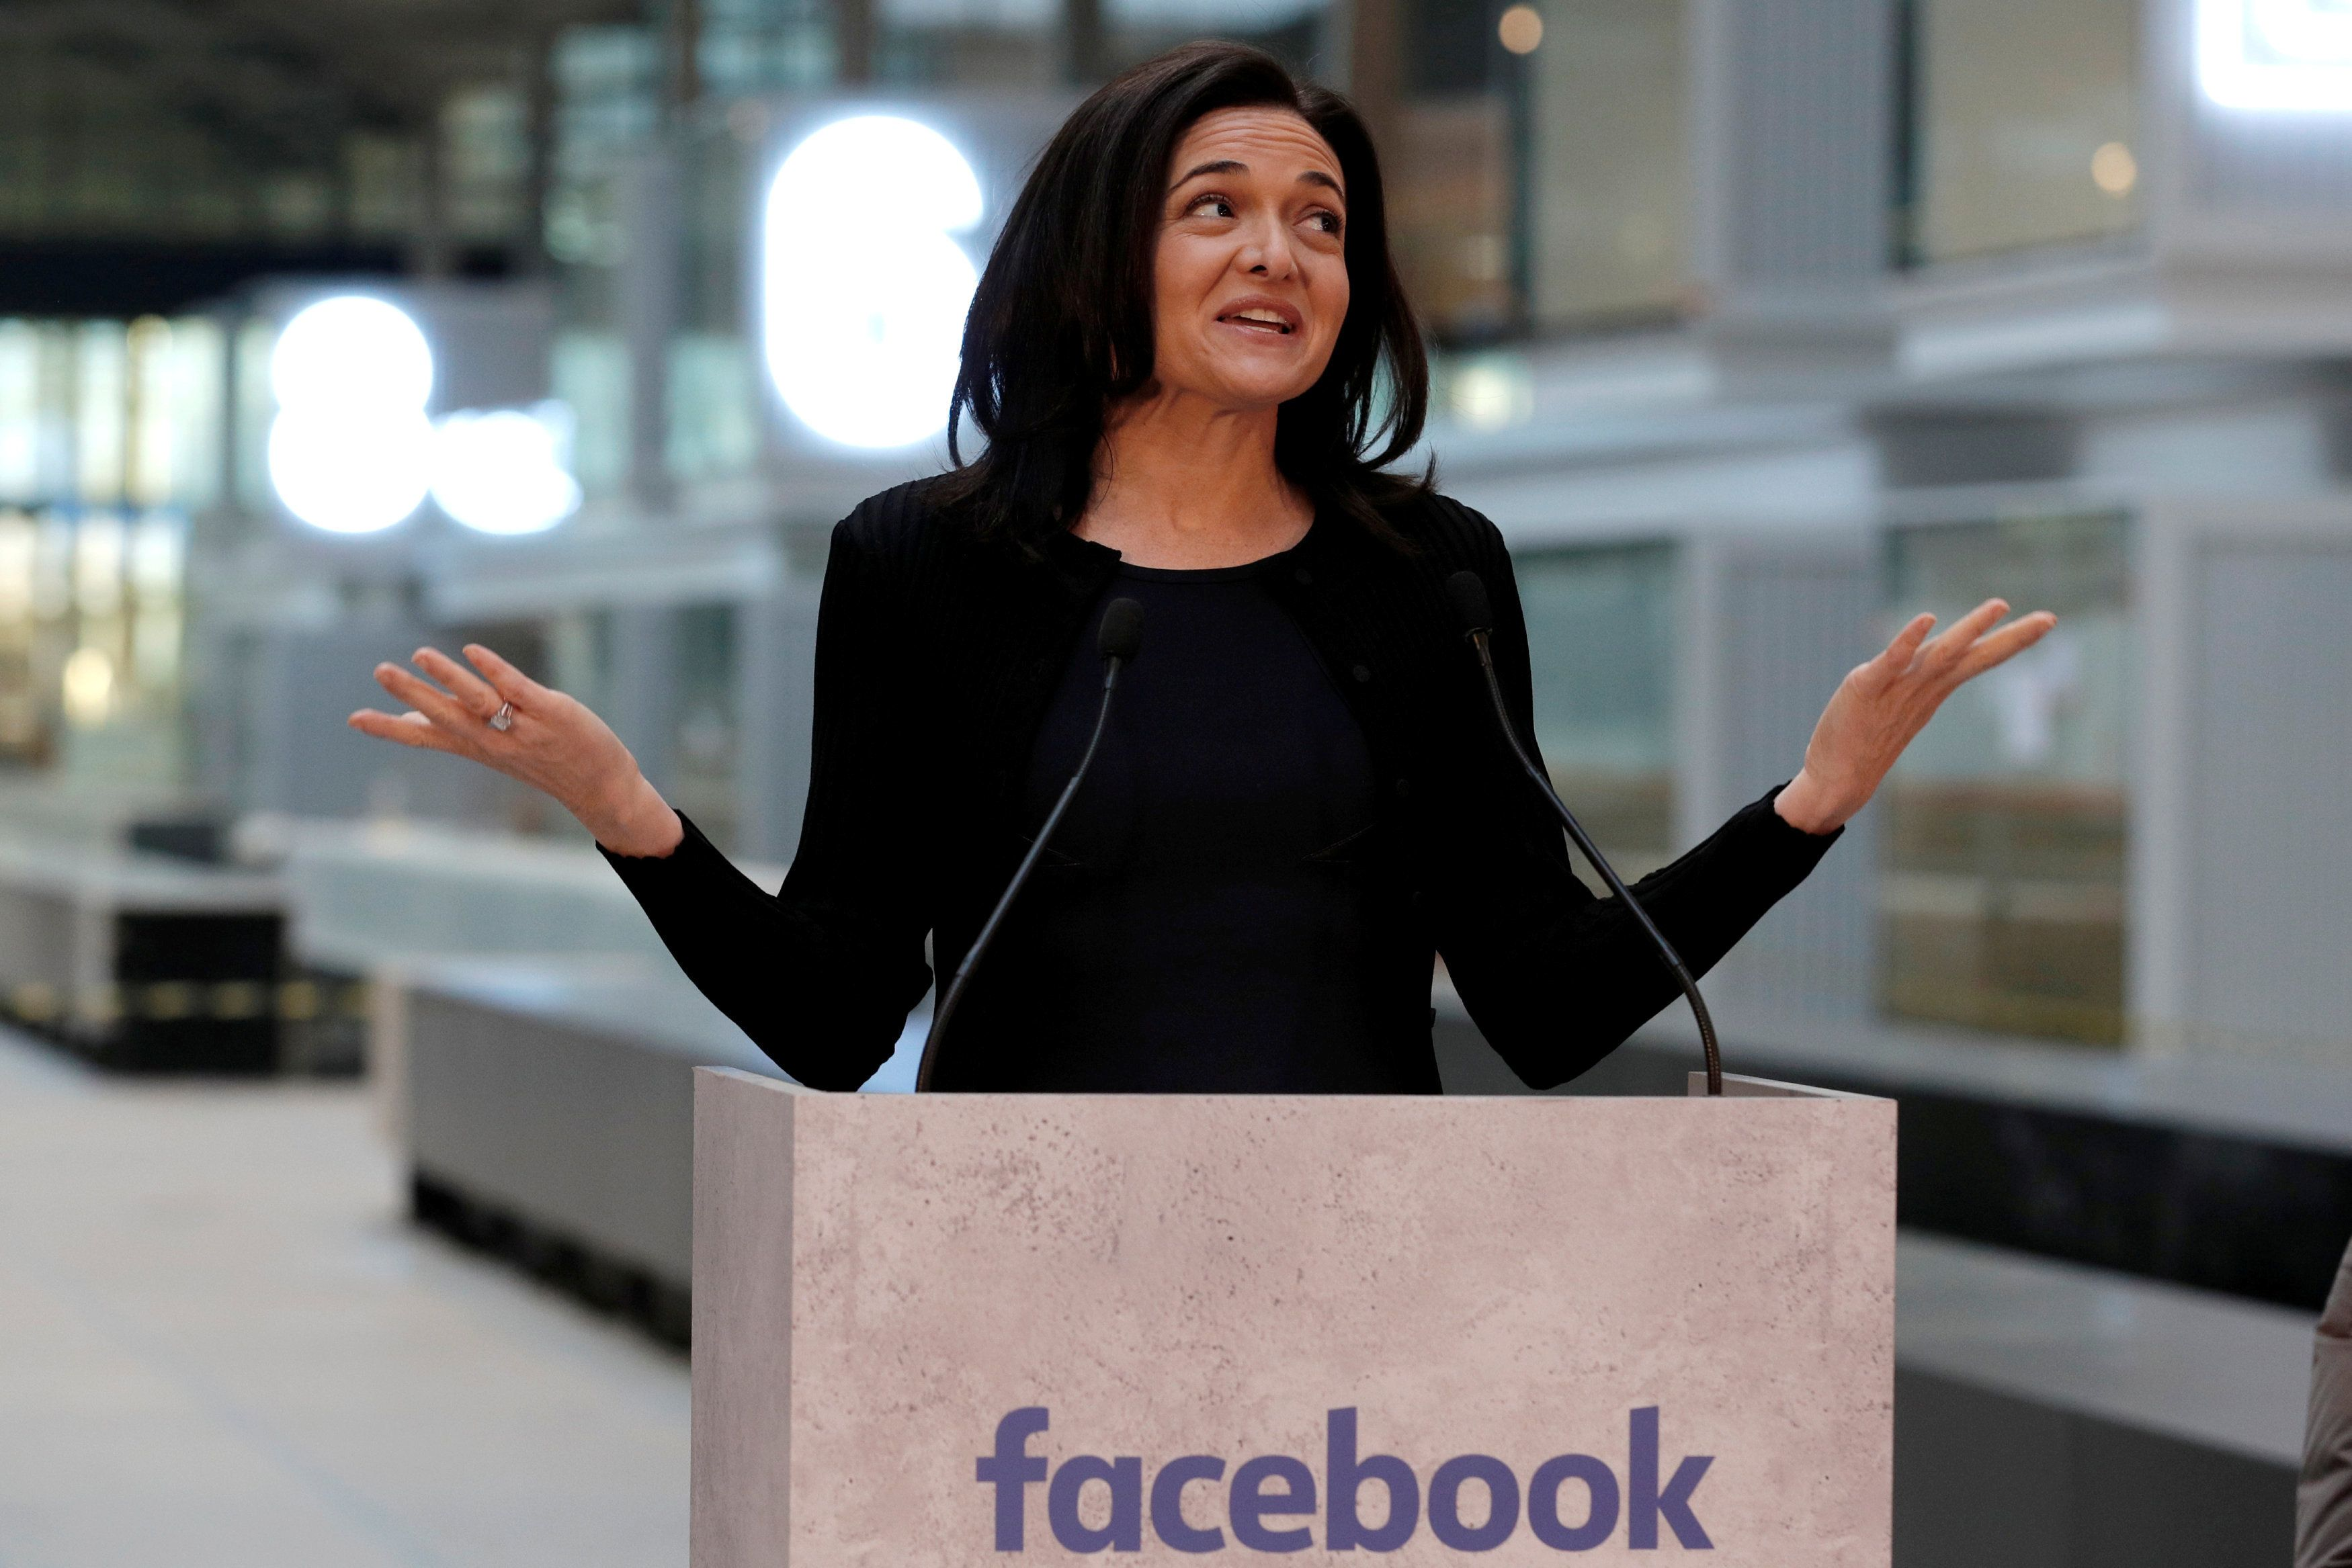 Sheryl Sandberg, chief operating officer of Facebook, delivers a speech during a visit in Paris on Jan. 17, 2017.